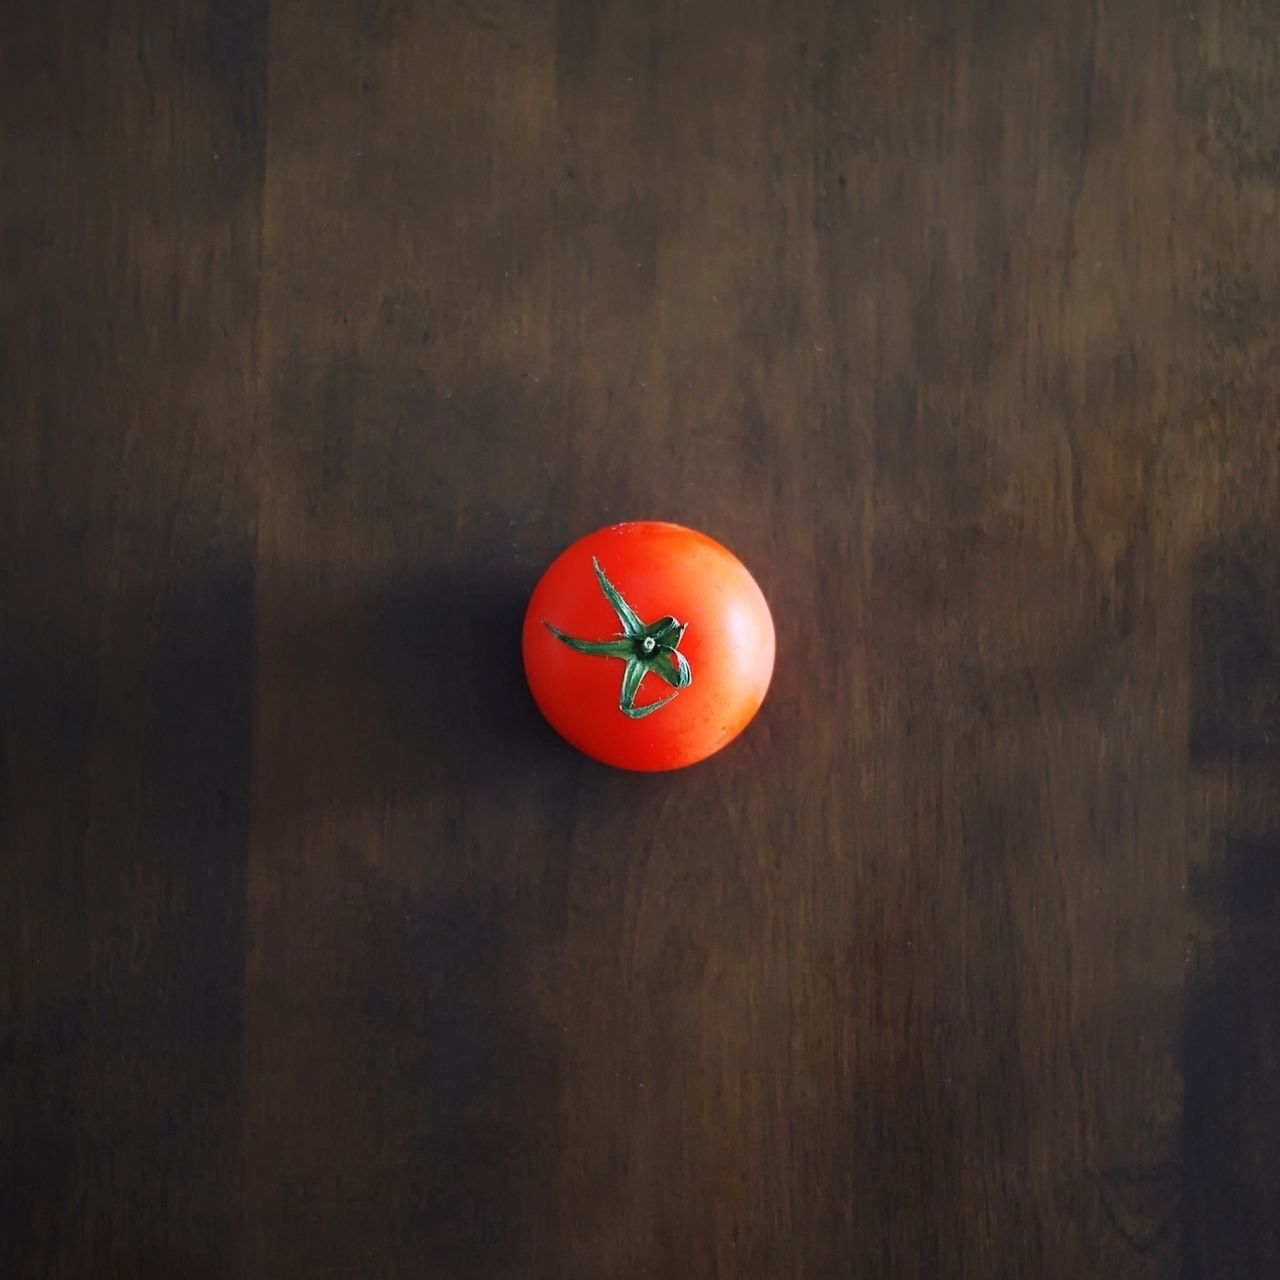 1280x1280 Wallpaper minimalism, tomato, red, table, wall, shadow, background